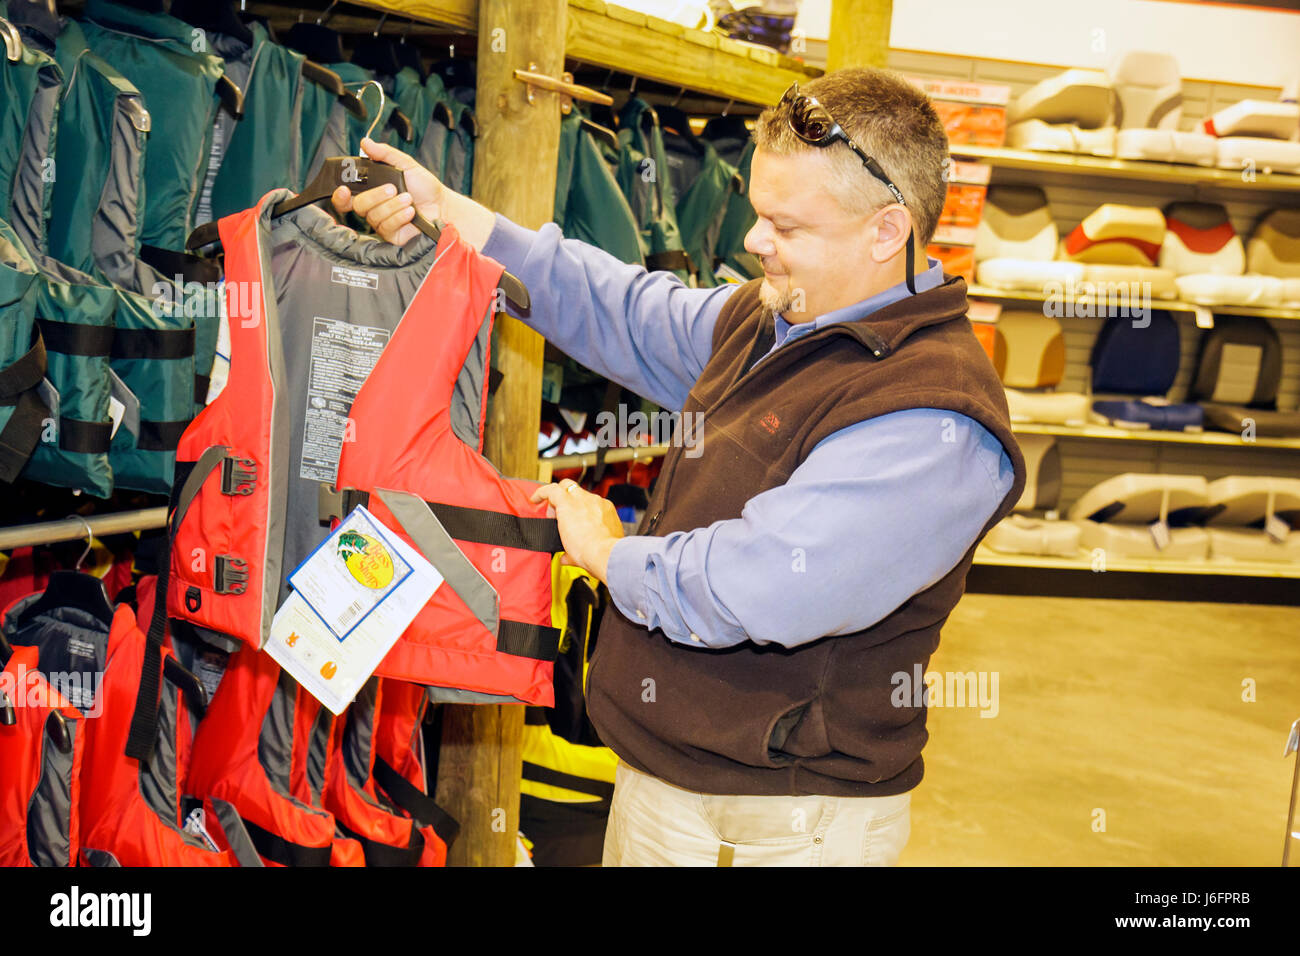 4a1dc02973 Tennessee Sevierville Kodak Bass Pro Shops man shopping sporting goods  outdoor recreation boating gear fishing retail store life